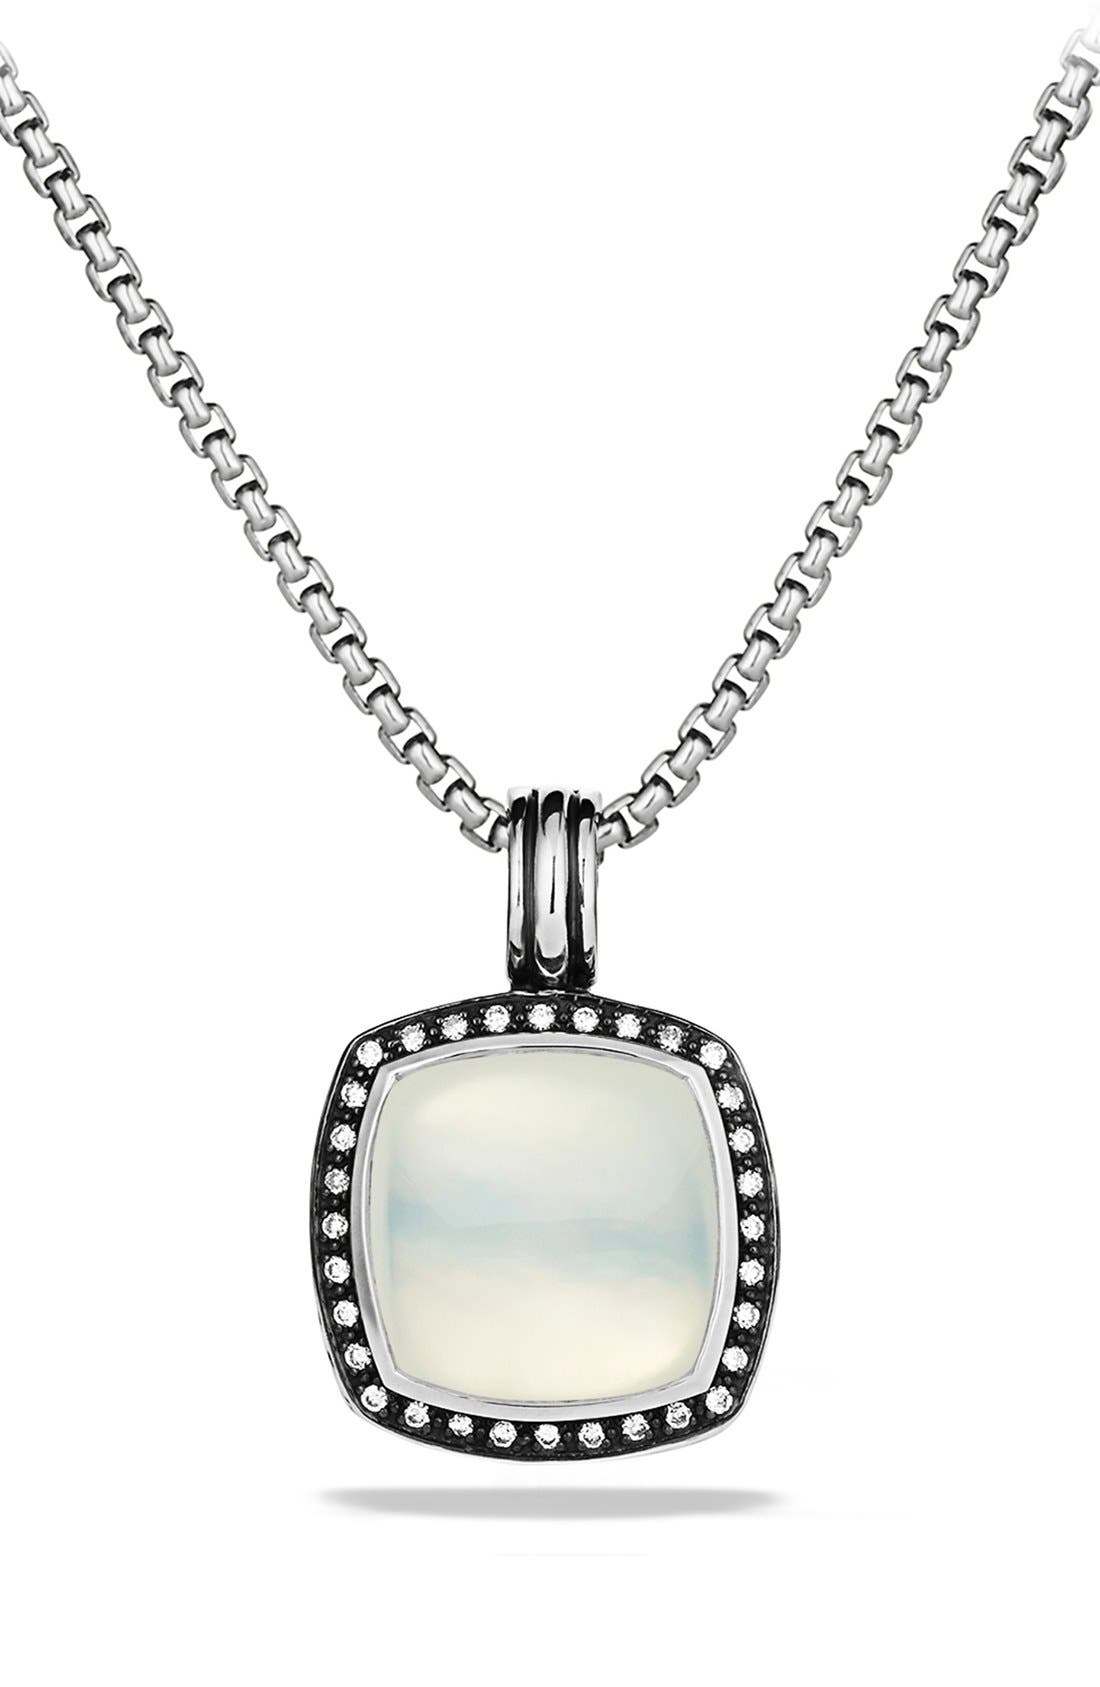 Alternate Image 1 Selected - David Yurman 'Albion' Pendant with Moon Quartz and Diamonds